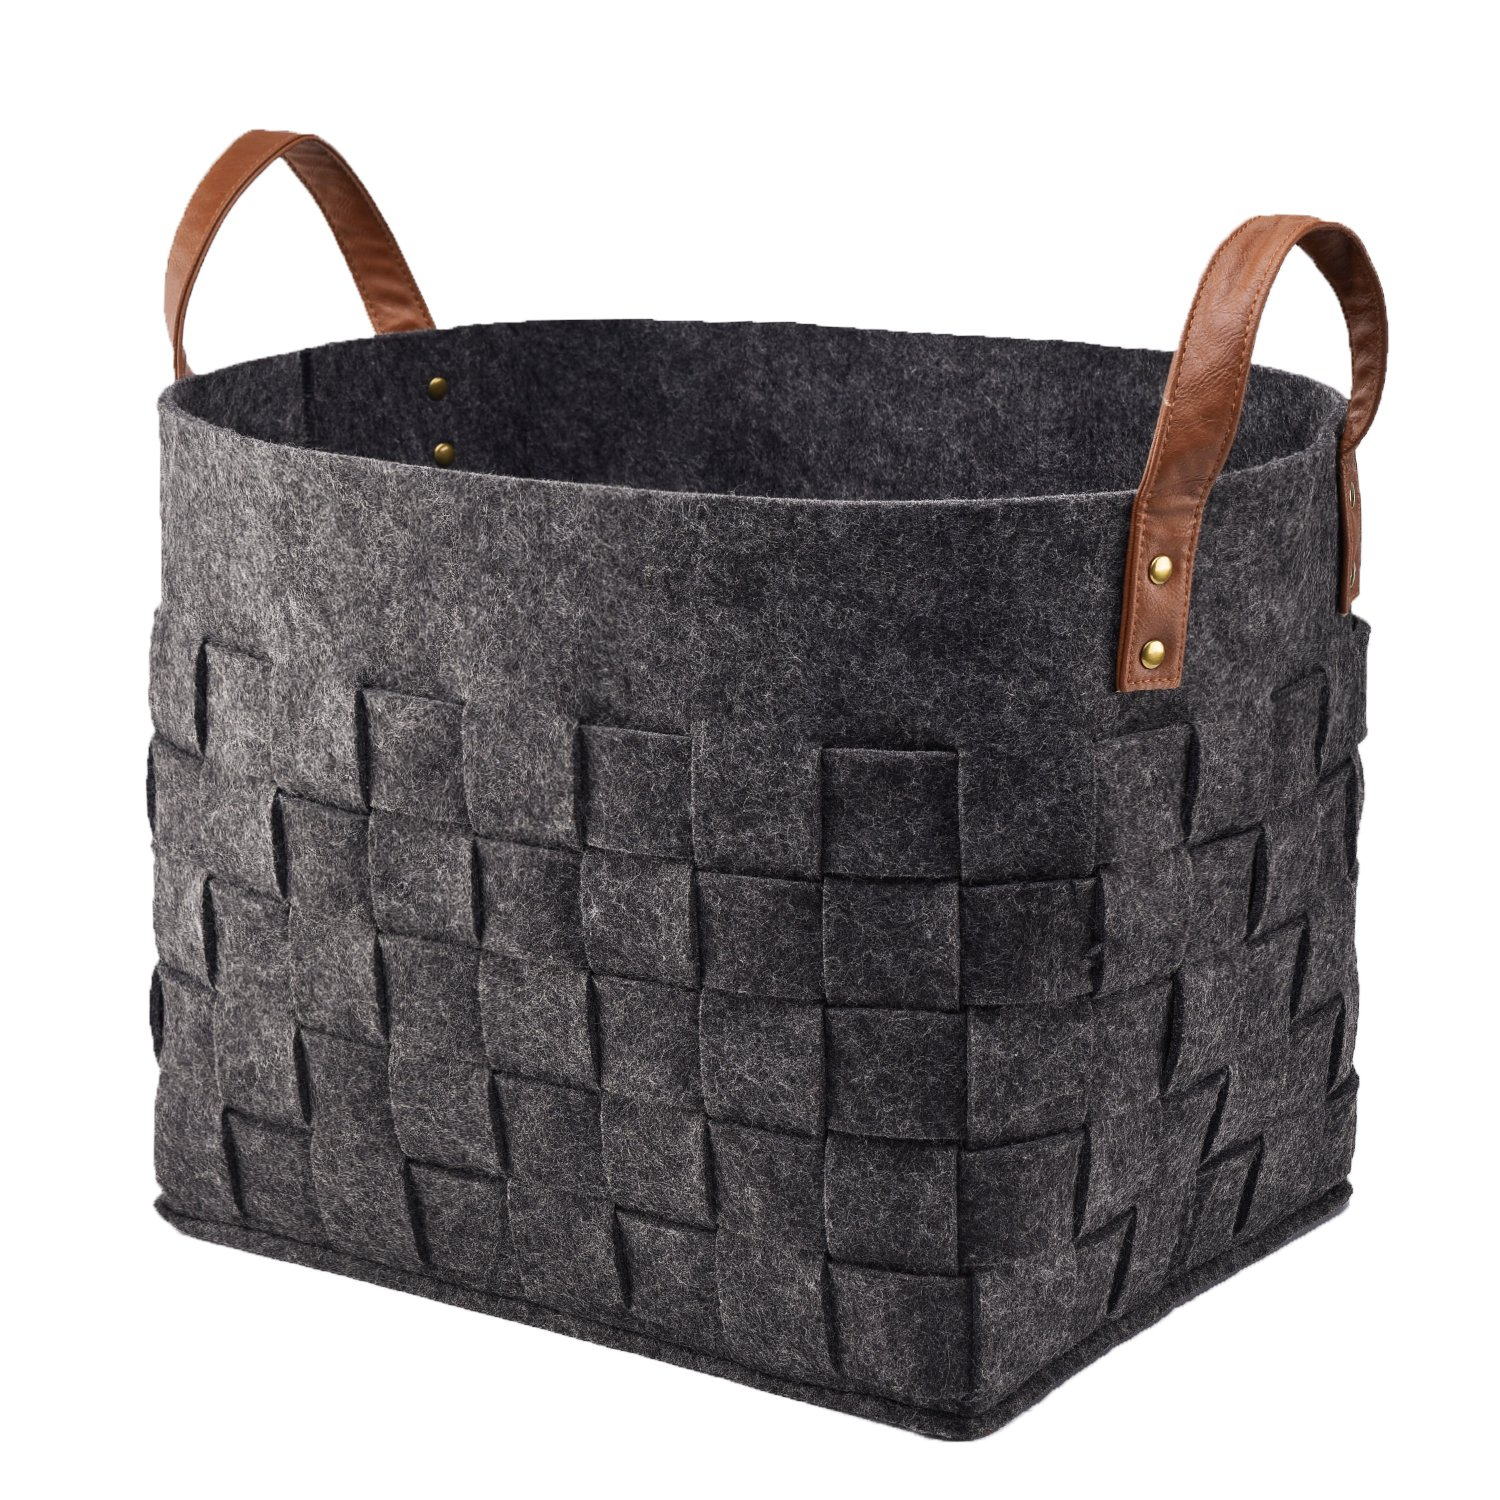 LoongBaby Felt Storage Baskets With Handles Soft Durable Toy Storage Nursery Bins Home Decorations (Black  sc 1 st  Amazon.com & Amazon.com : LoongBaby Felt Storage Baskets With Handles Soft ...